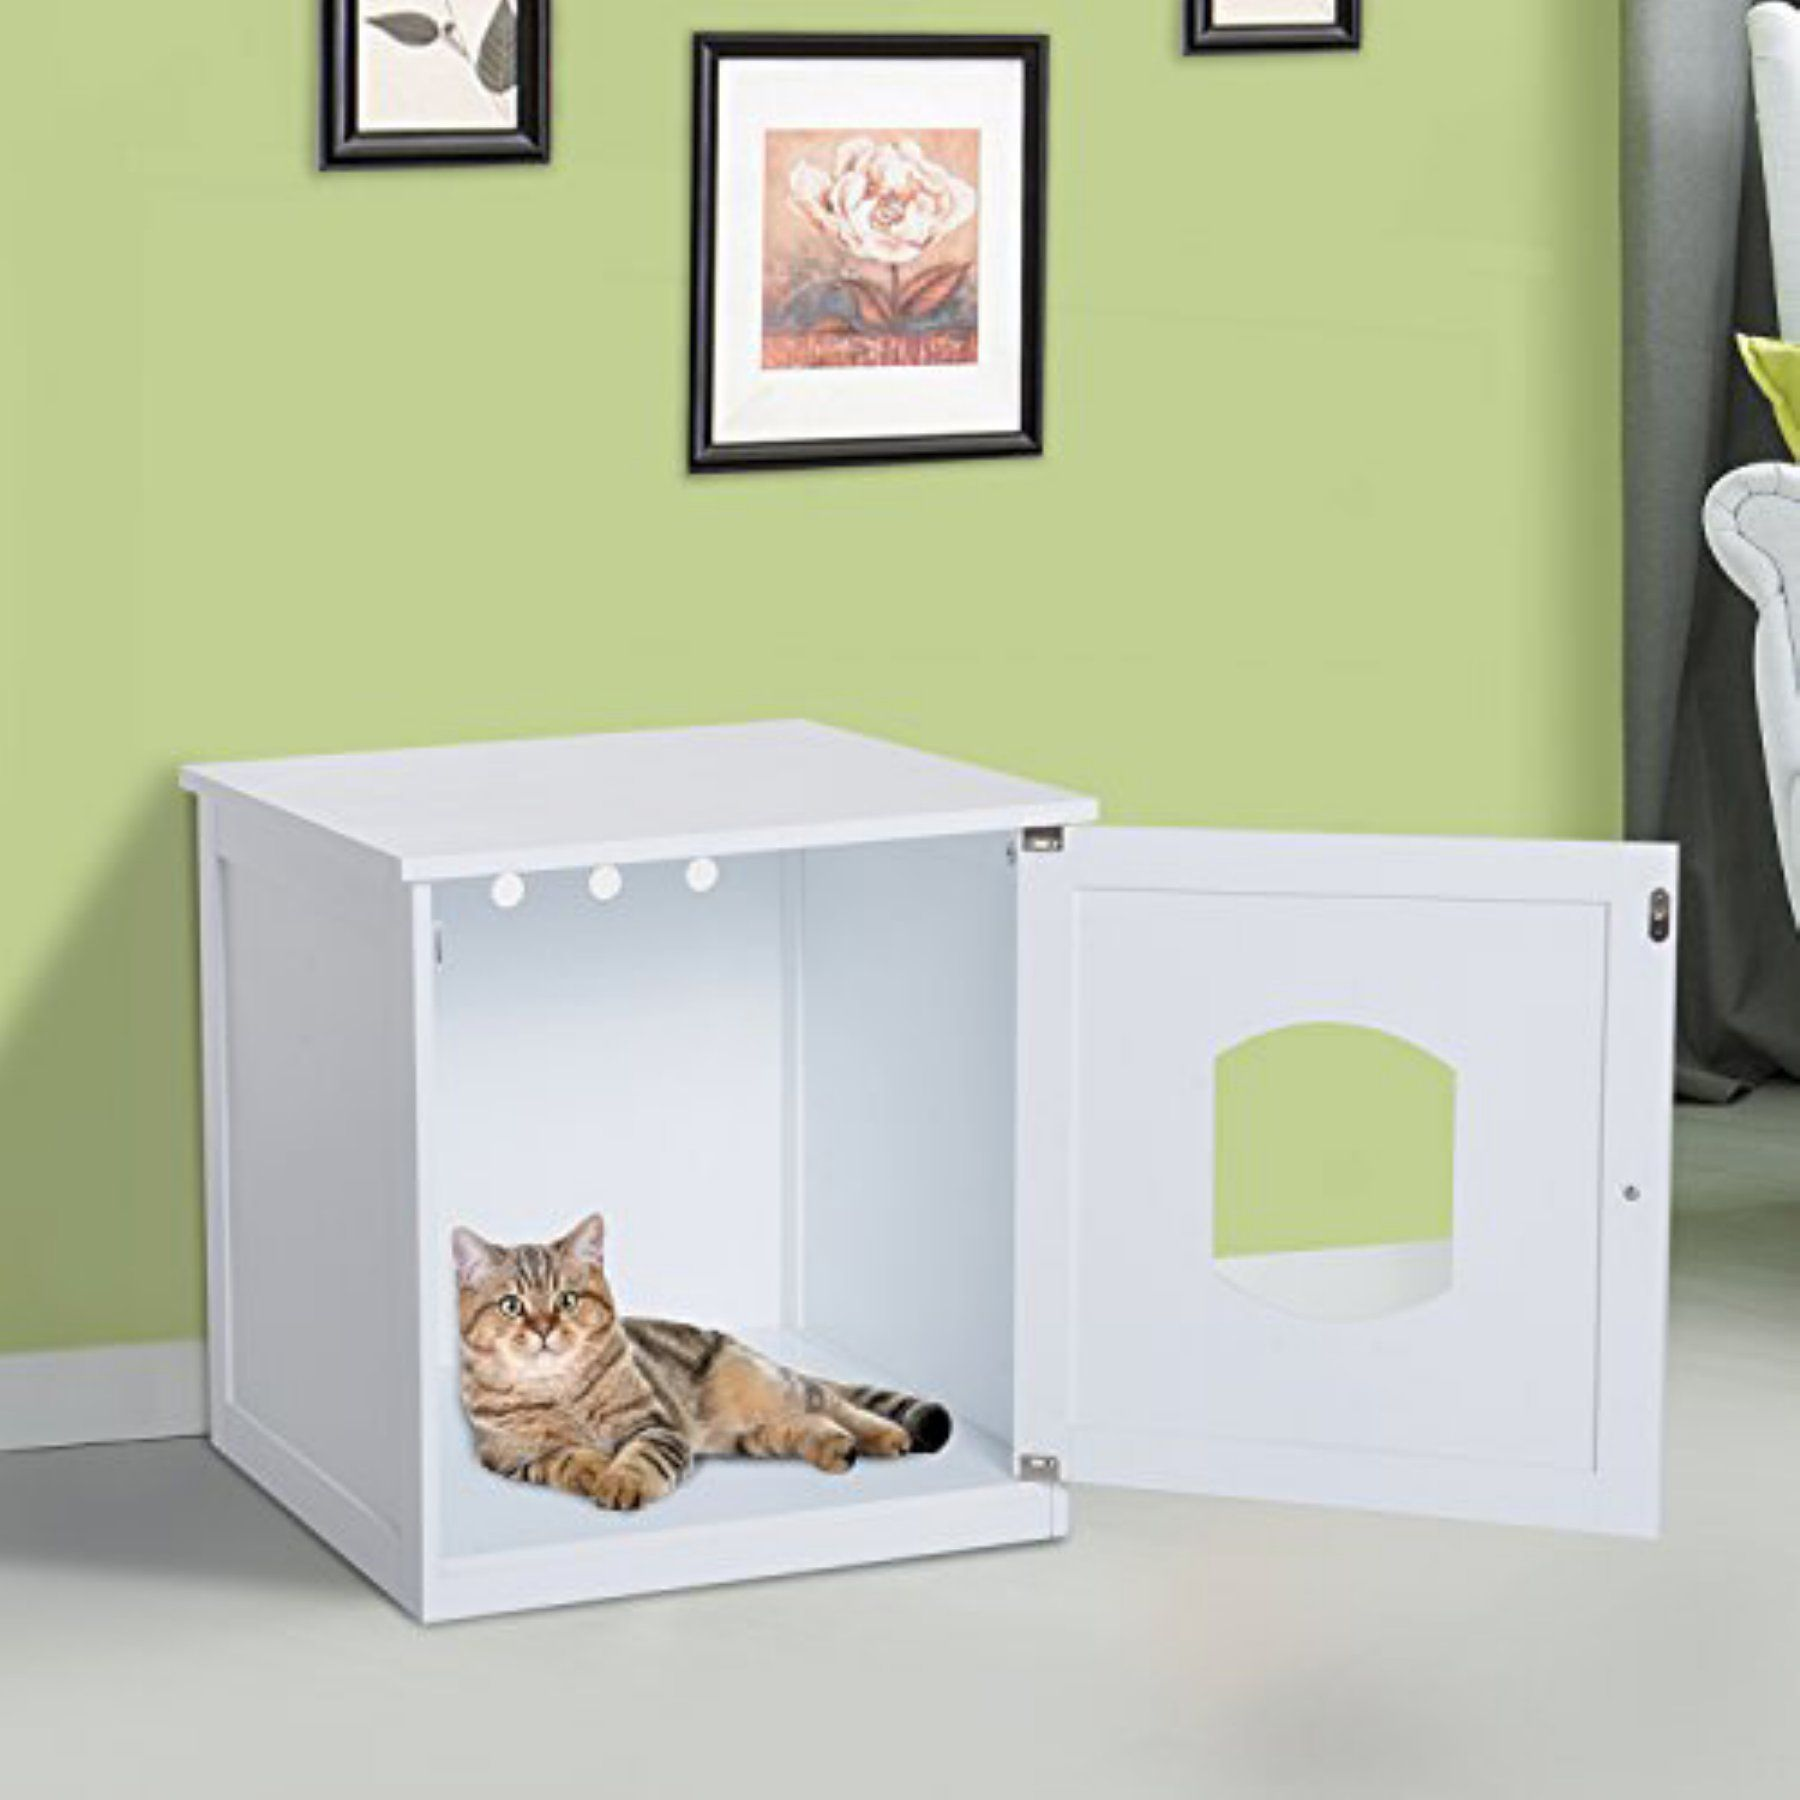 Pawhut Wooden Covered Cat Litter Box End Table Hideaway Cabinet